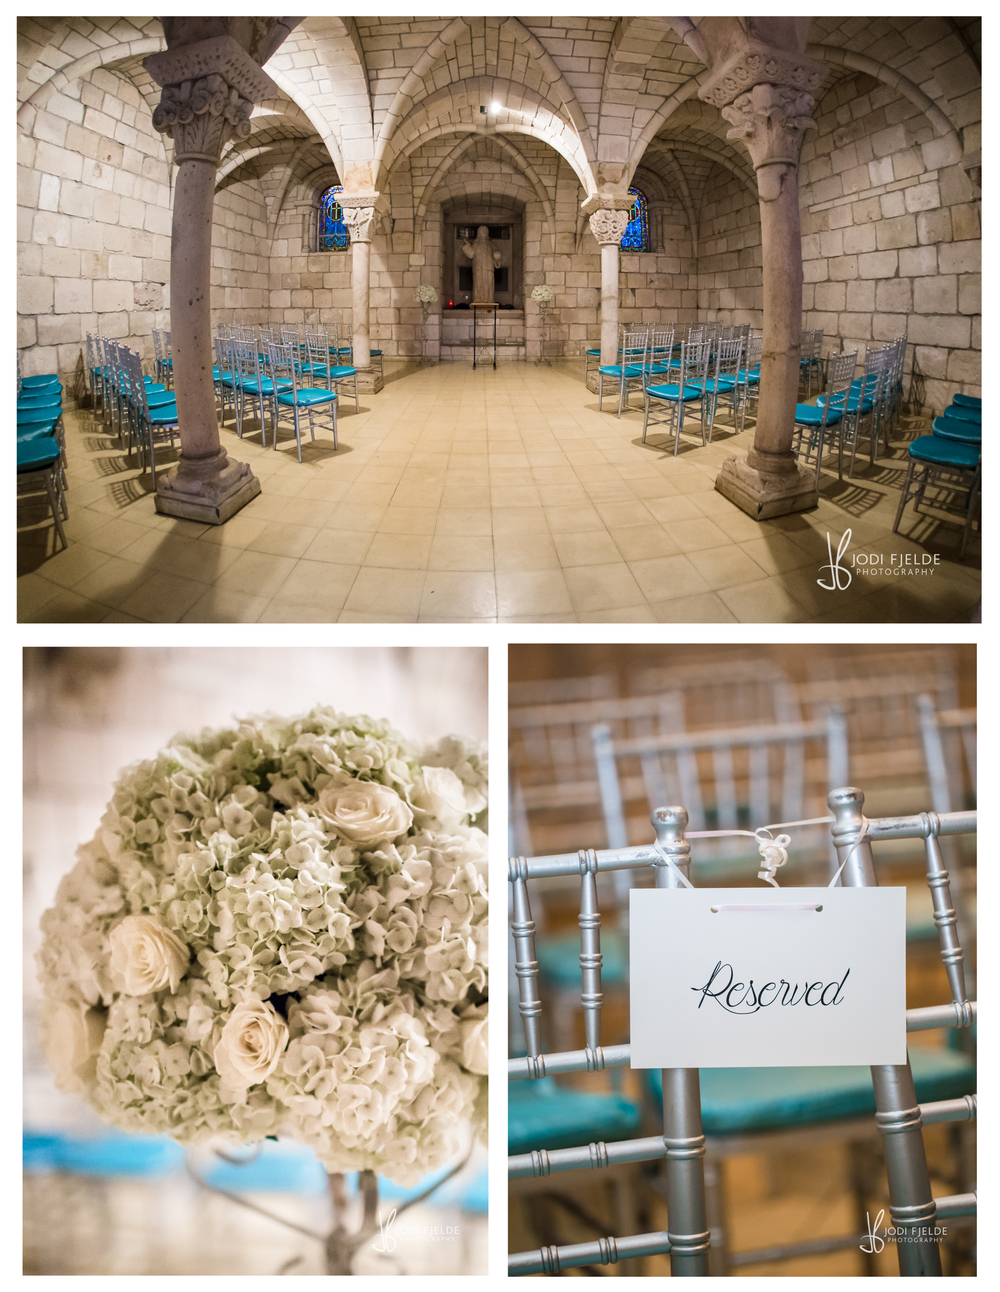 Ancient_Spanish_Monastery_Miami_Florida_wedding_Gio_Iggy_Jodi_Fjelde_Photography_7.jpg